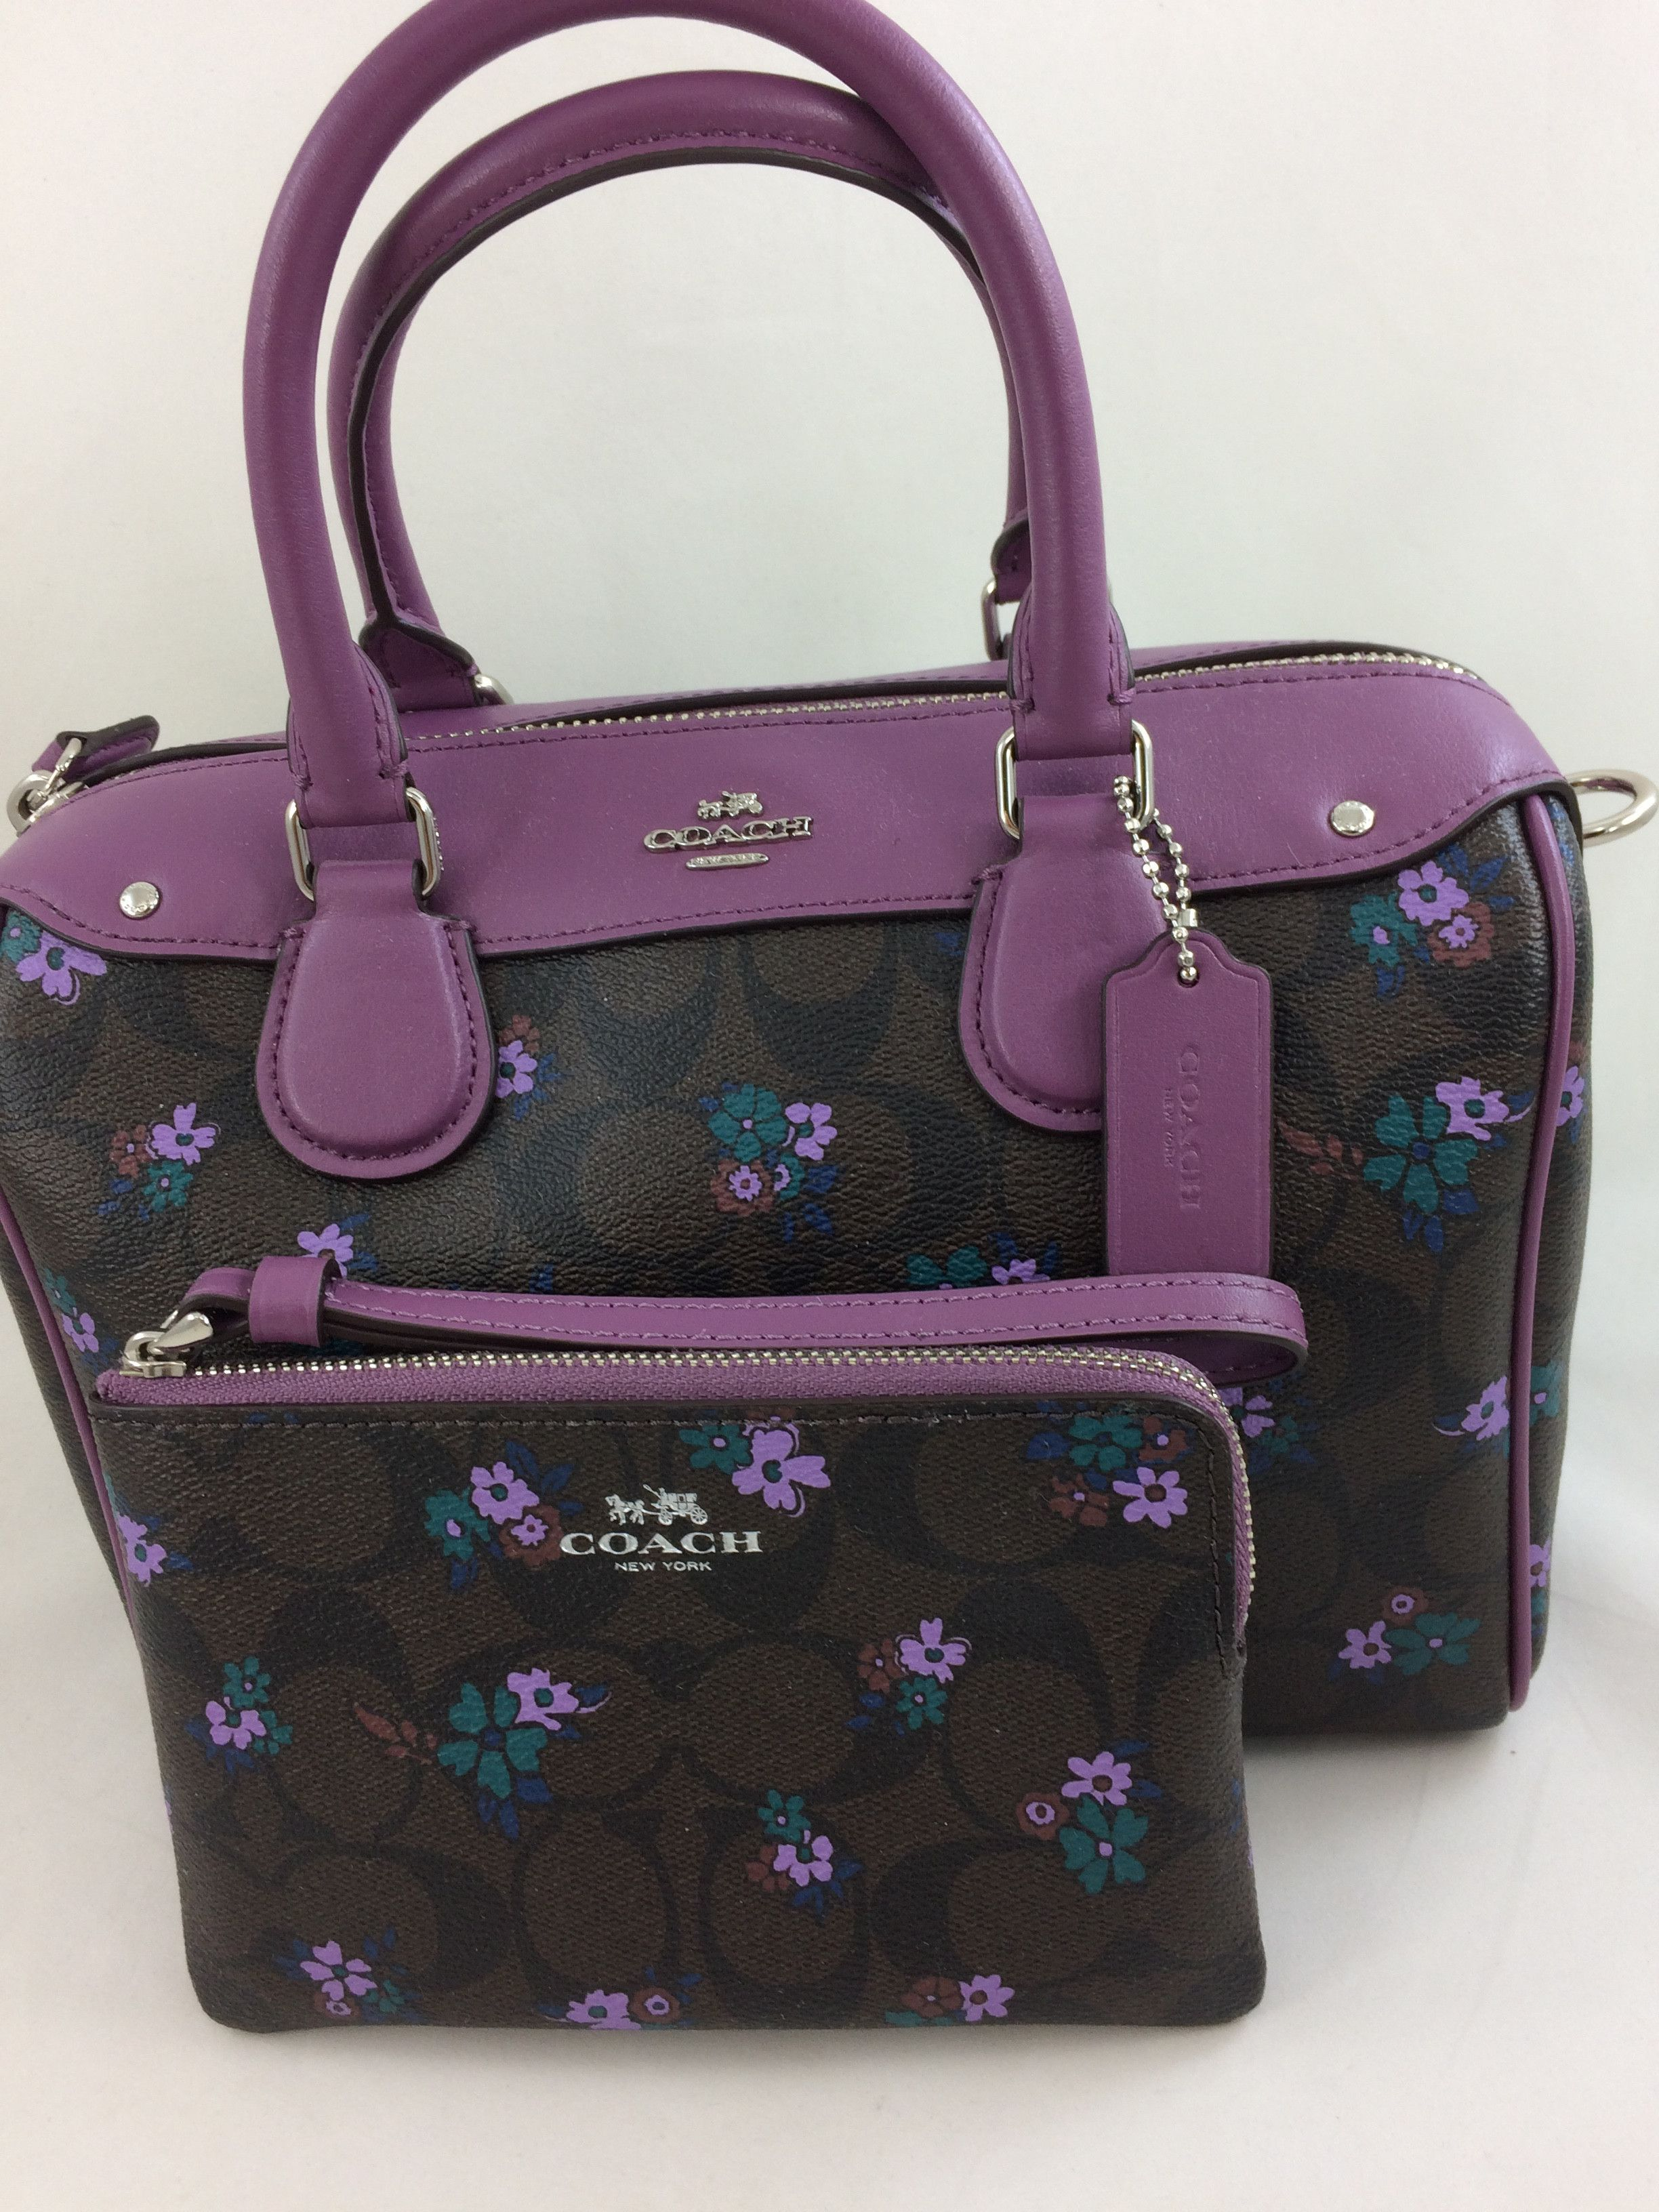 New Authentic Coach F59461 Mini Bennett Satchel in Ranch Floral Print Brown  Purple Multi+ Wristlet Set ec9feaf6541c4